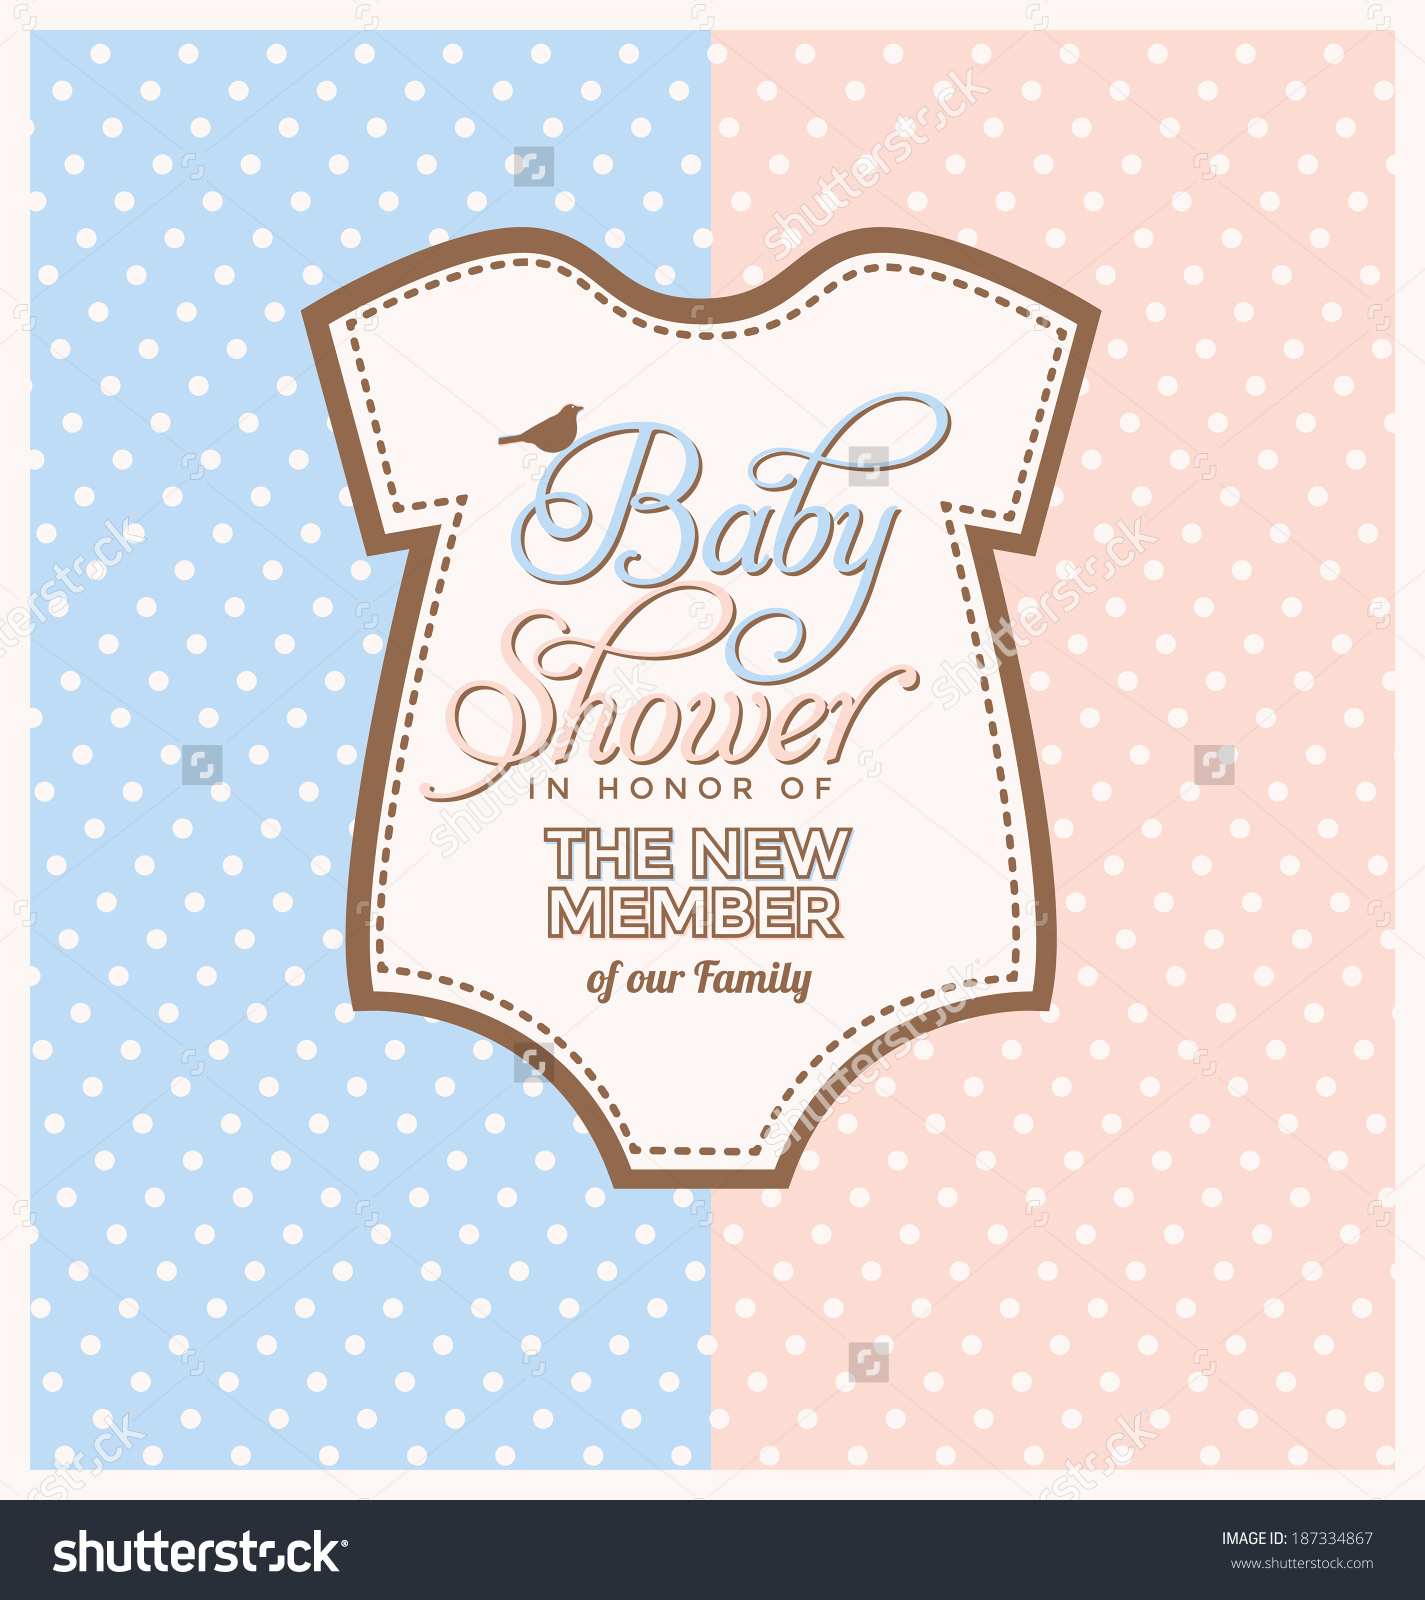 Cute Unisex Baby Shower Design Template Stock Vector 187334867.